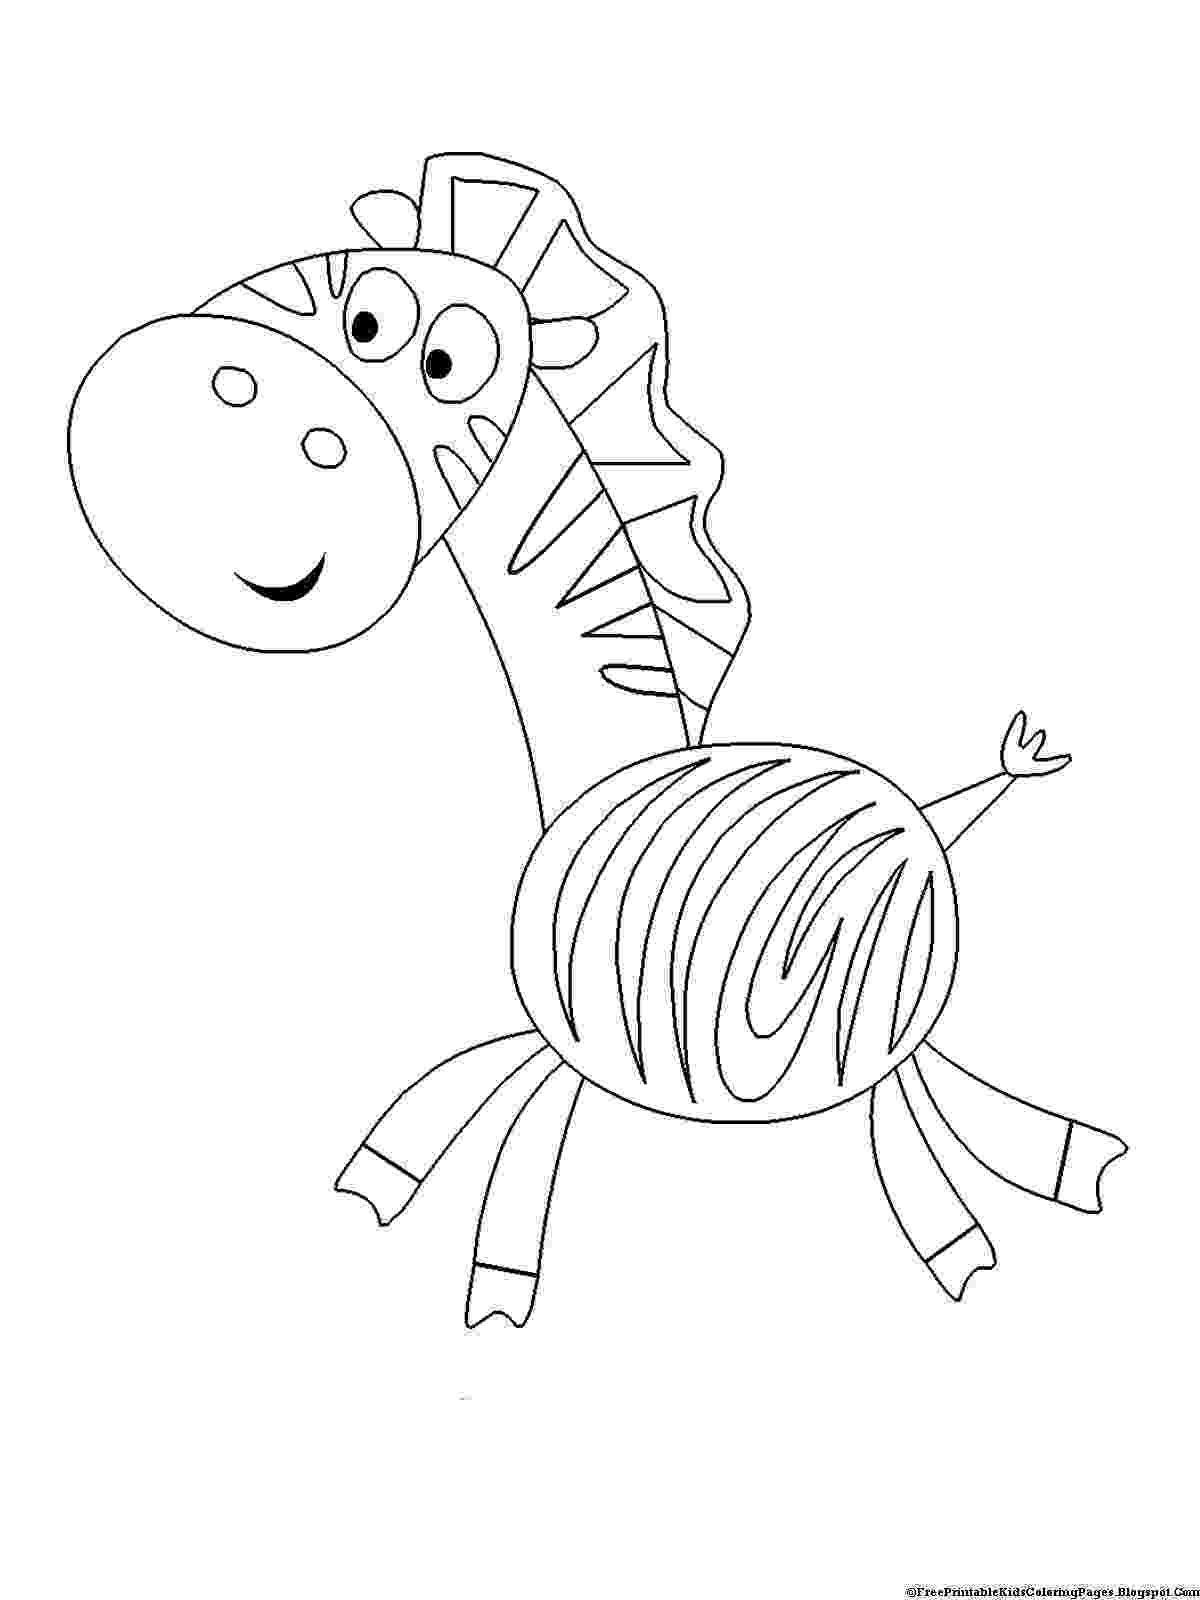 free coloring pages for children free printable dog coloring pages for kids pages children coloring for free